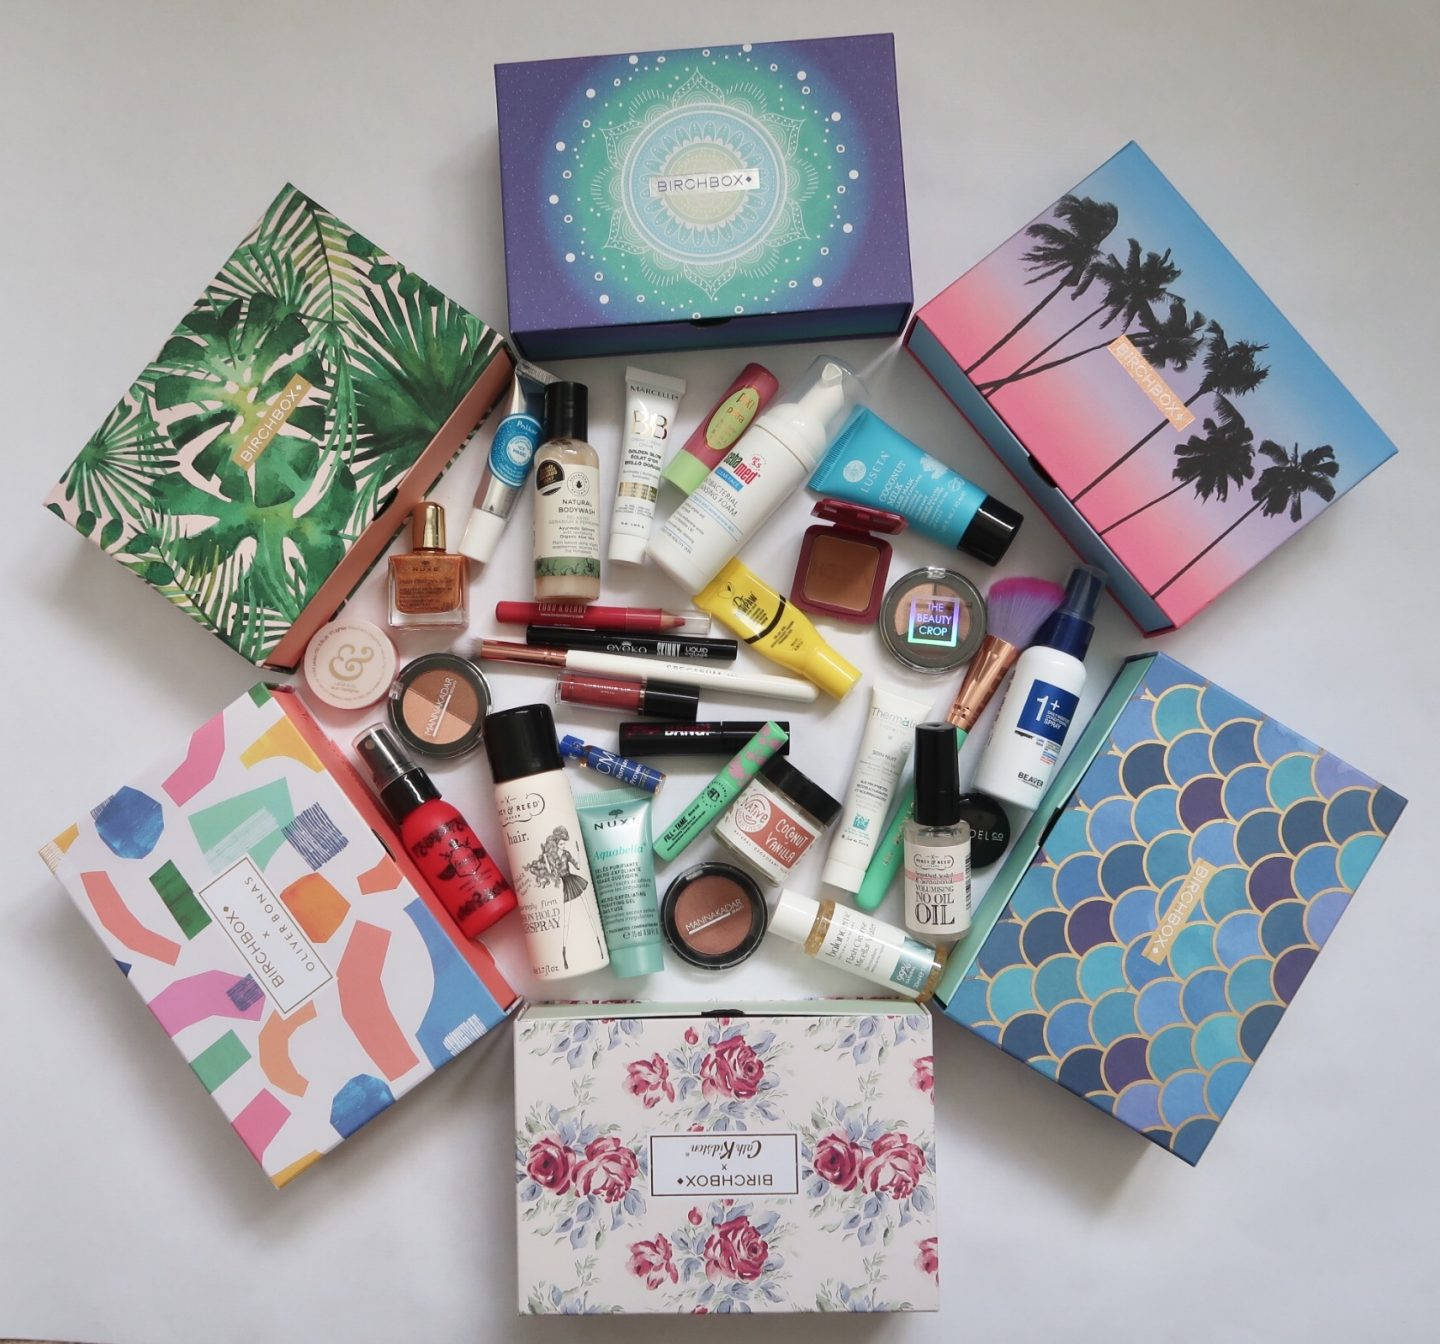 1 Year Of Birchbox: The Best & Worst Of The Boxes